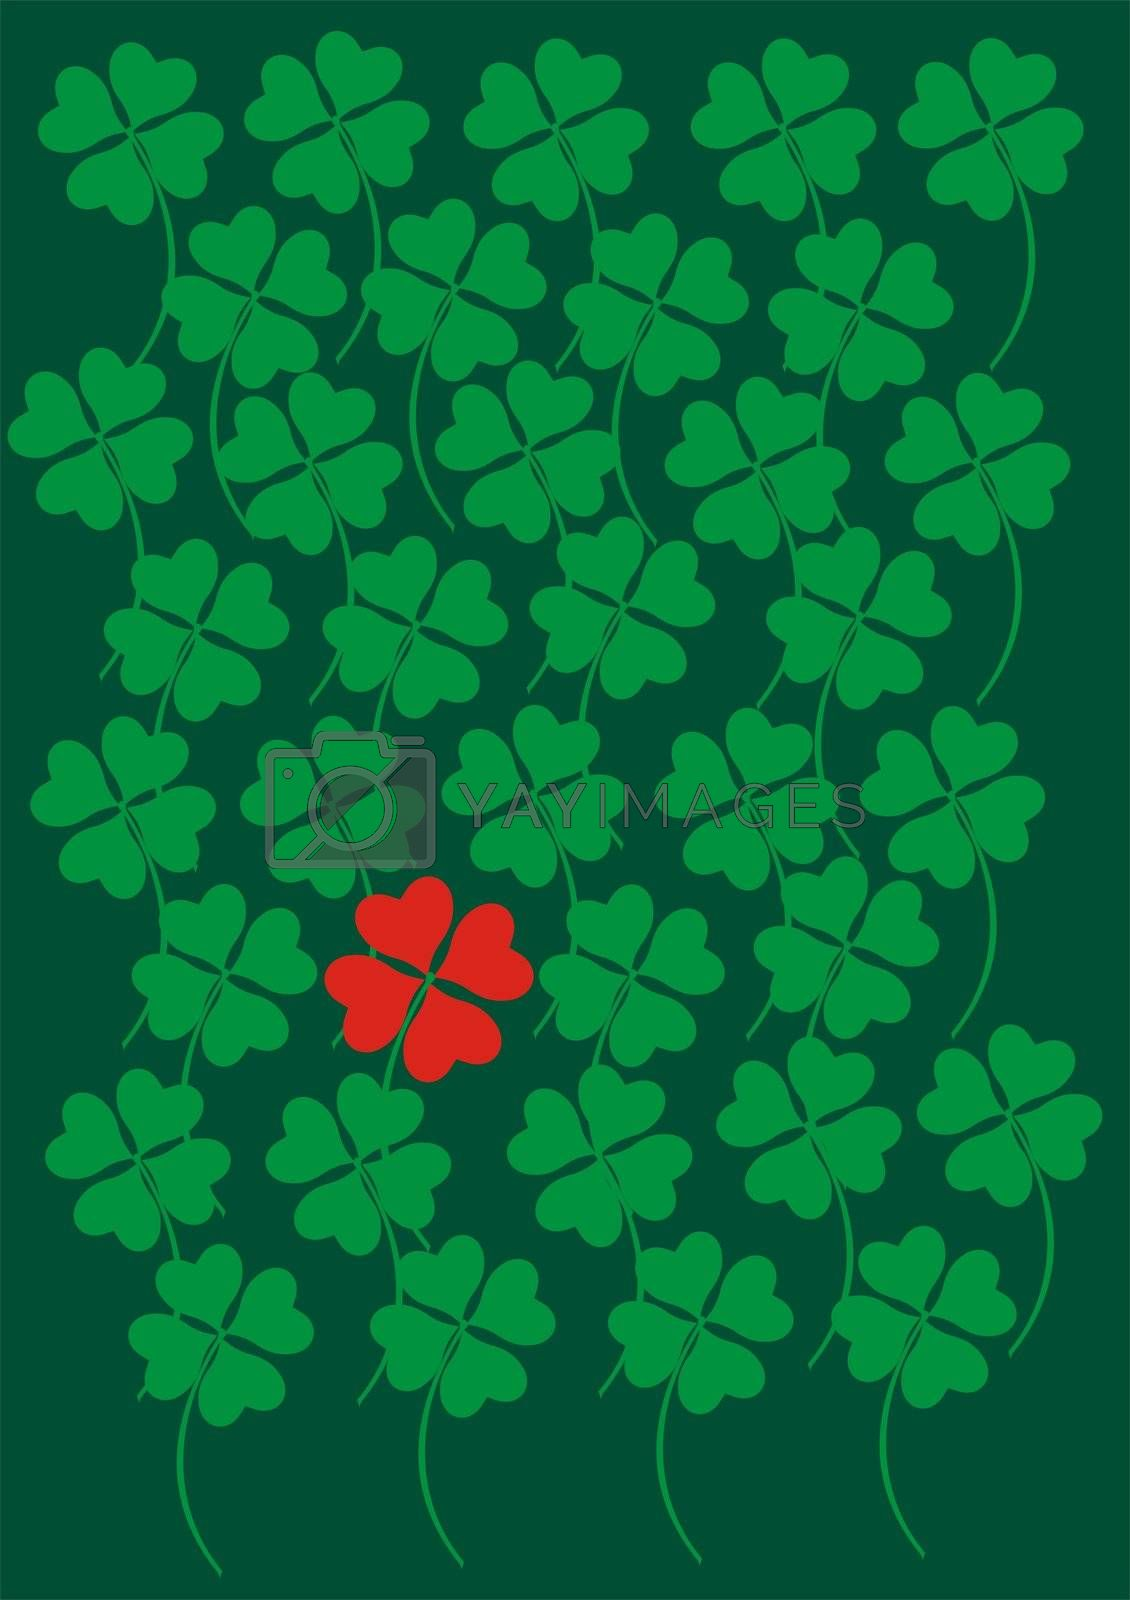 four leaf clover made of heart shapes as symbol of luck